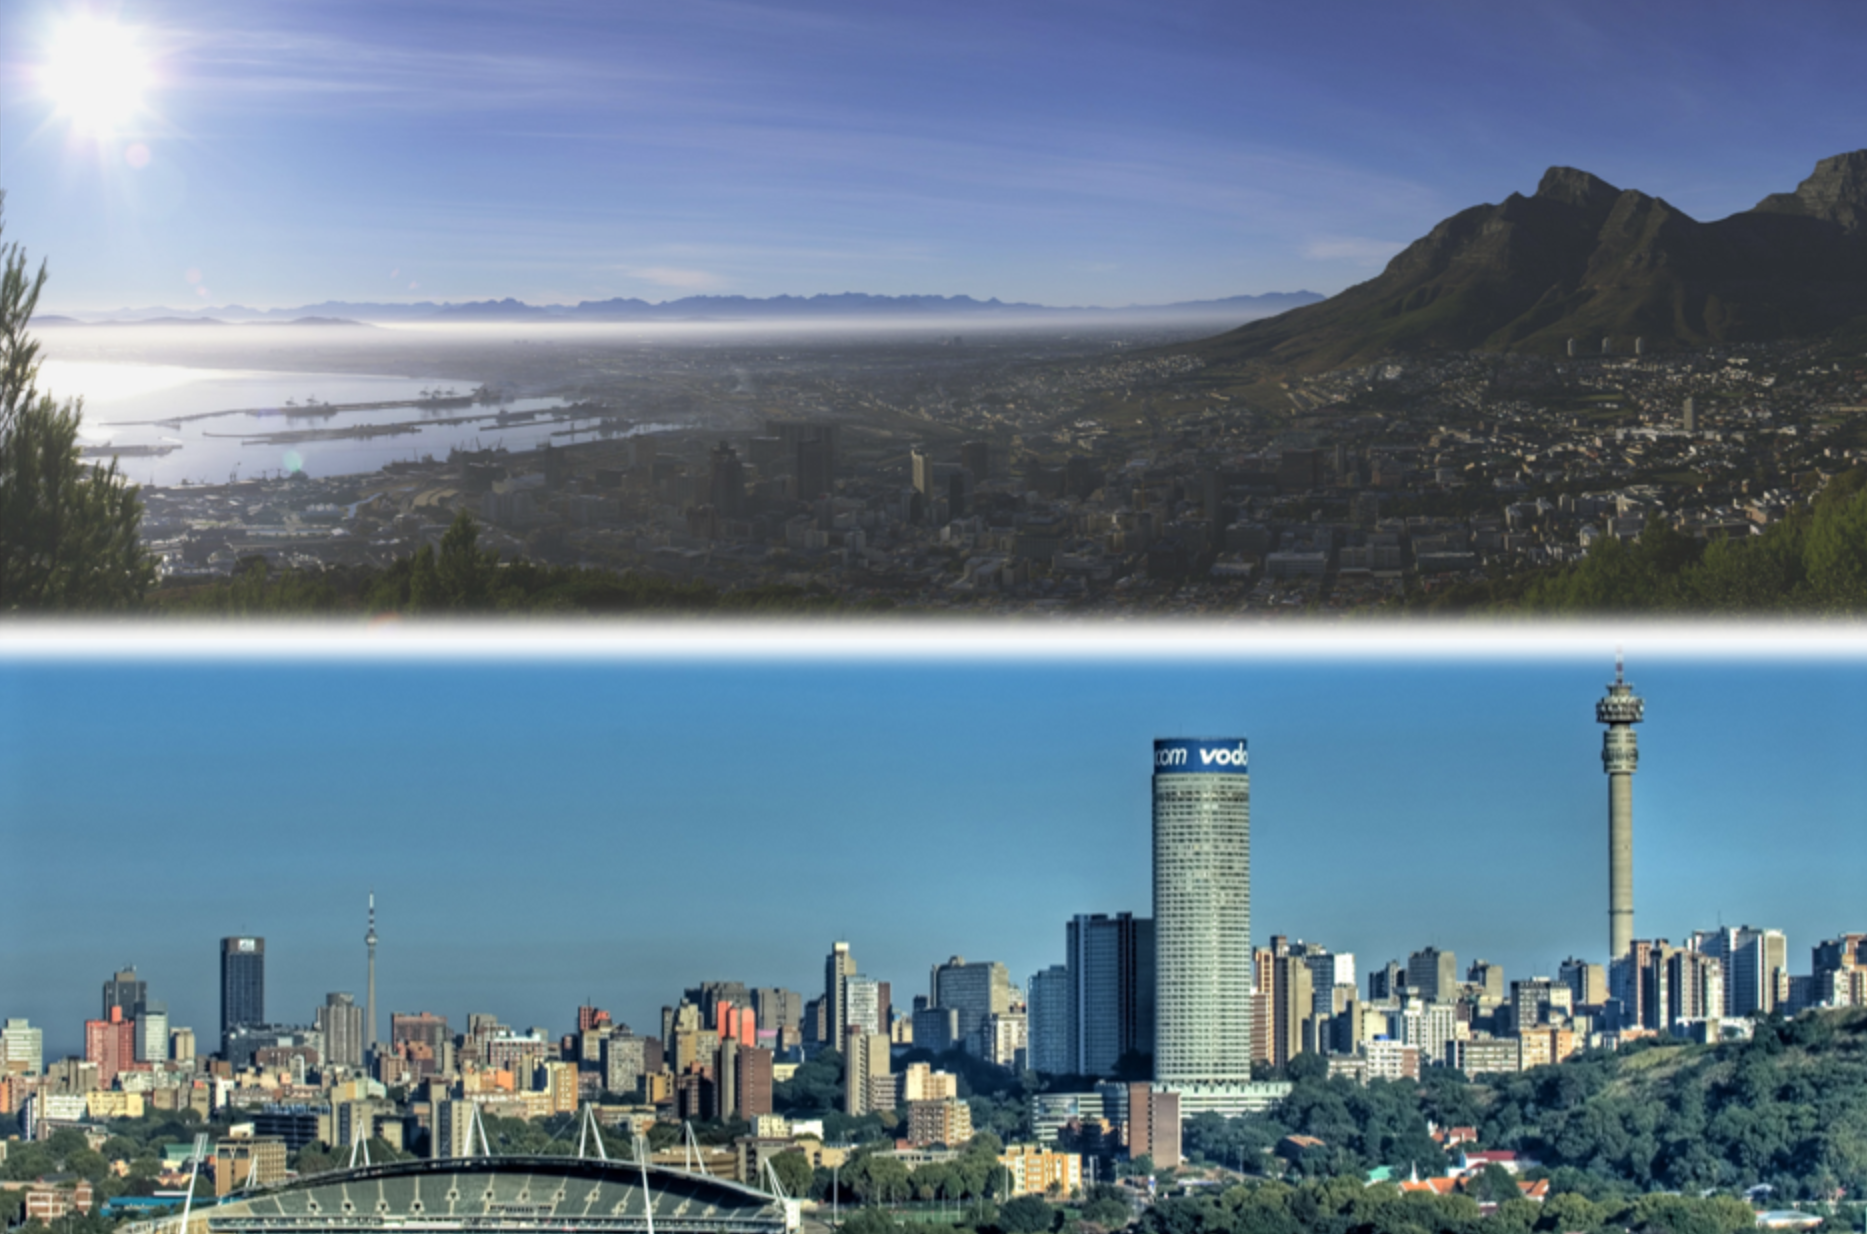 Split photo of shoreline in Capetown and city skyline in Johannesburg